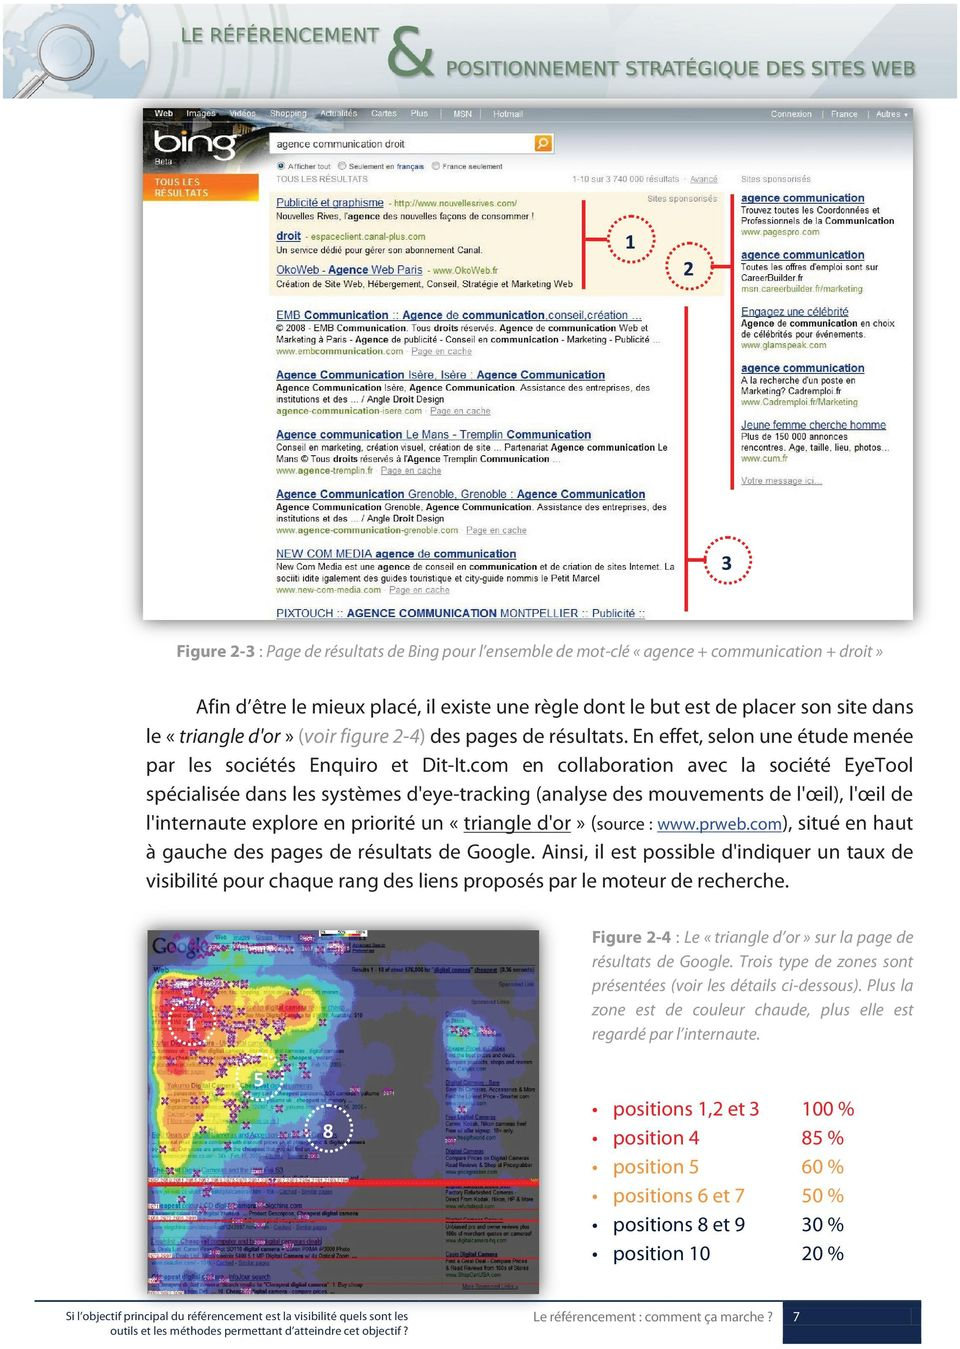 com en collaboration avec la société EyeTool spécialisée dans les systèmes d'eye-tracking (analyse des mouvements de l'œil), l'œil de l'internaute explore en priorité un «triangle d'or» (source : www.